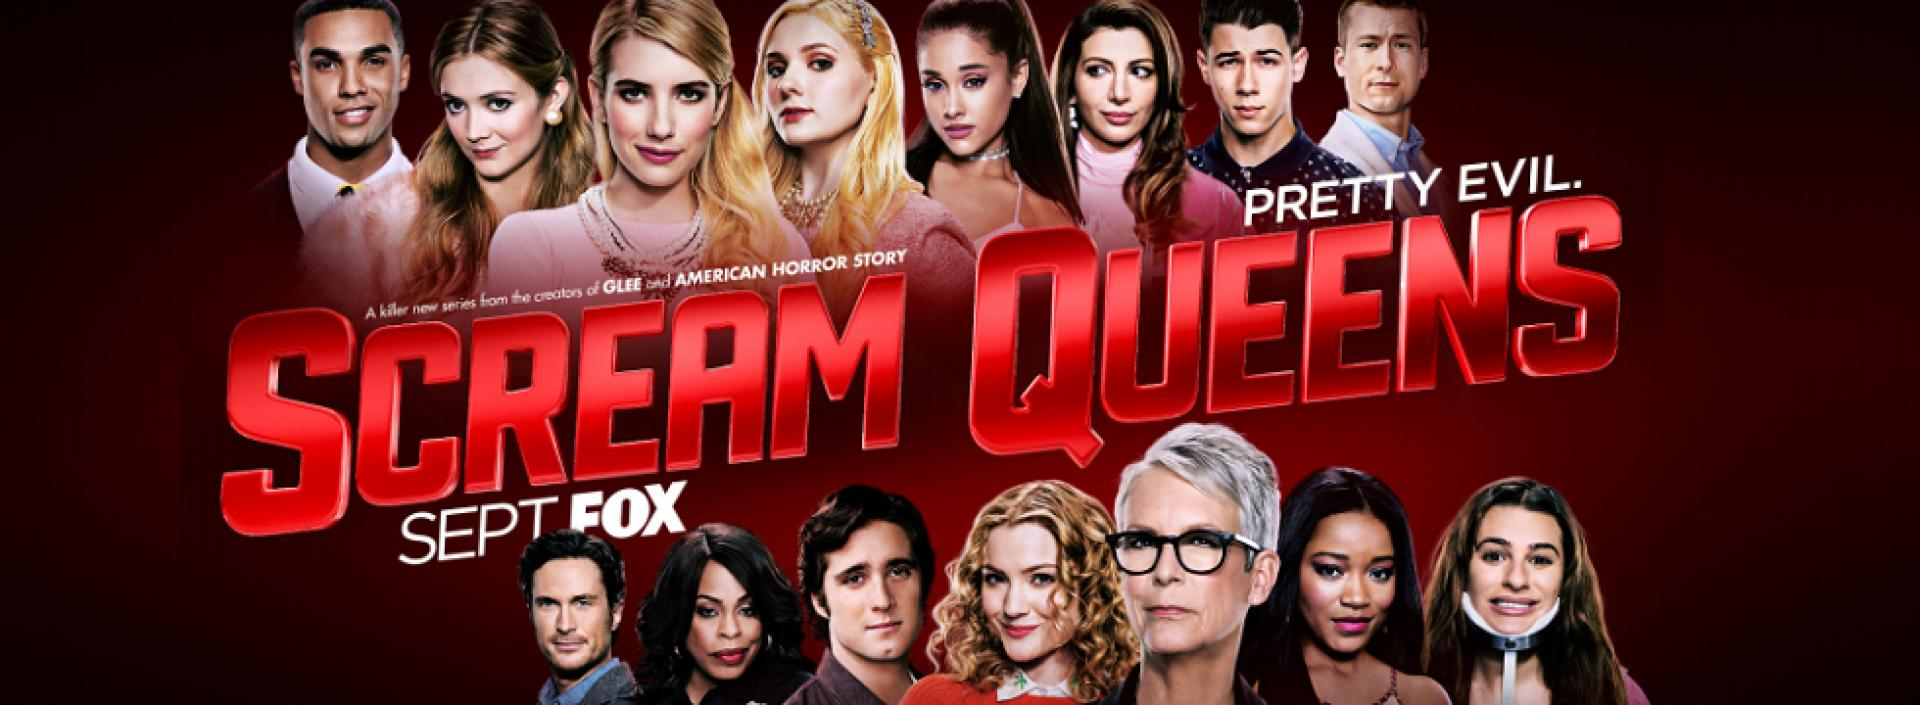 Scream Queens 1x01